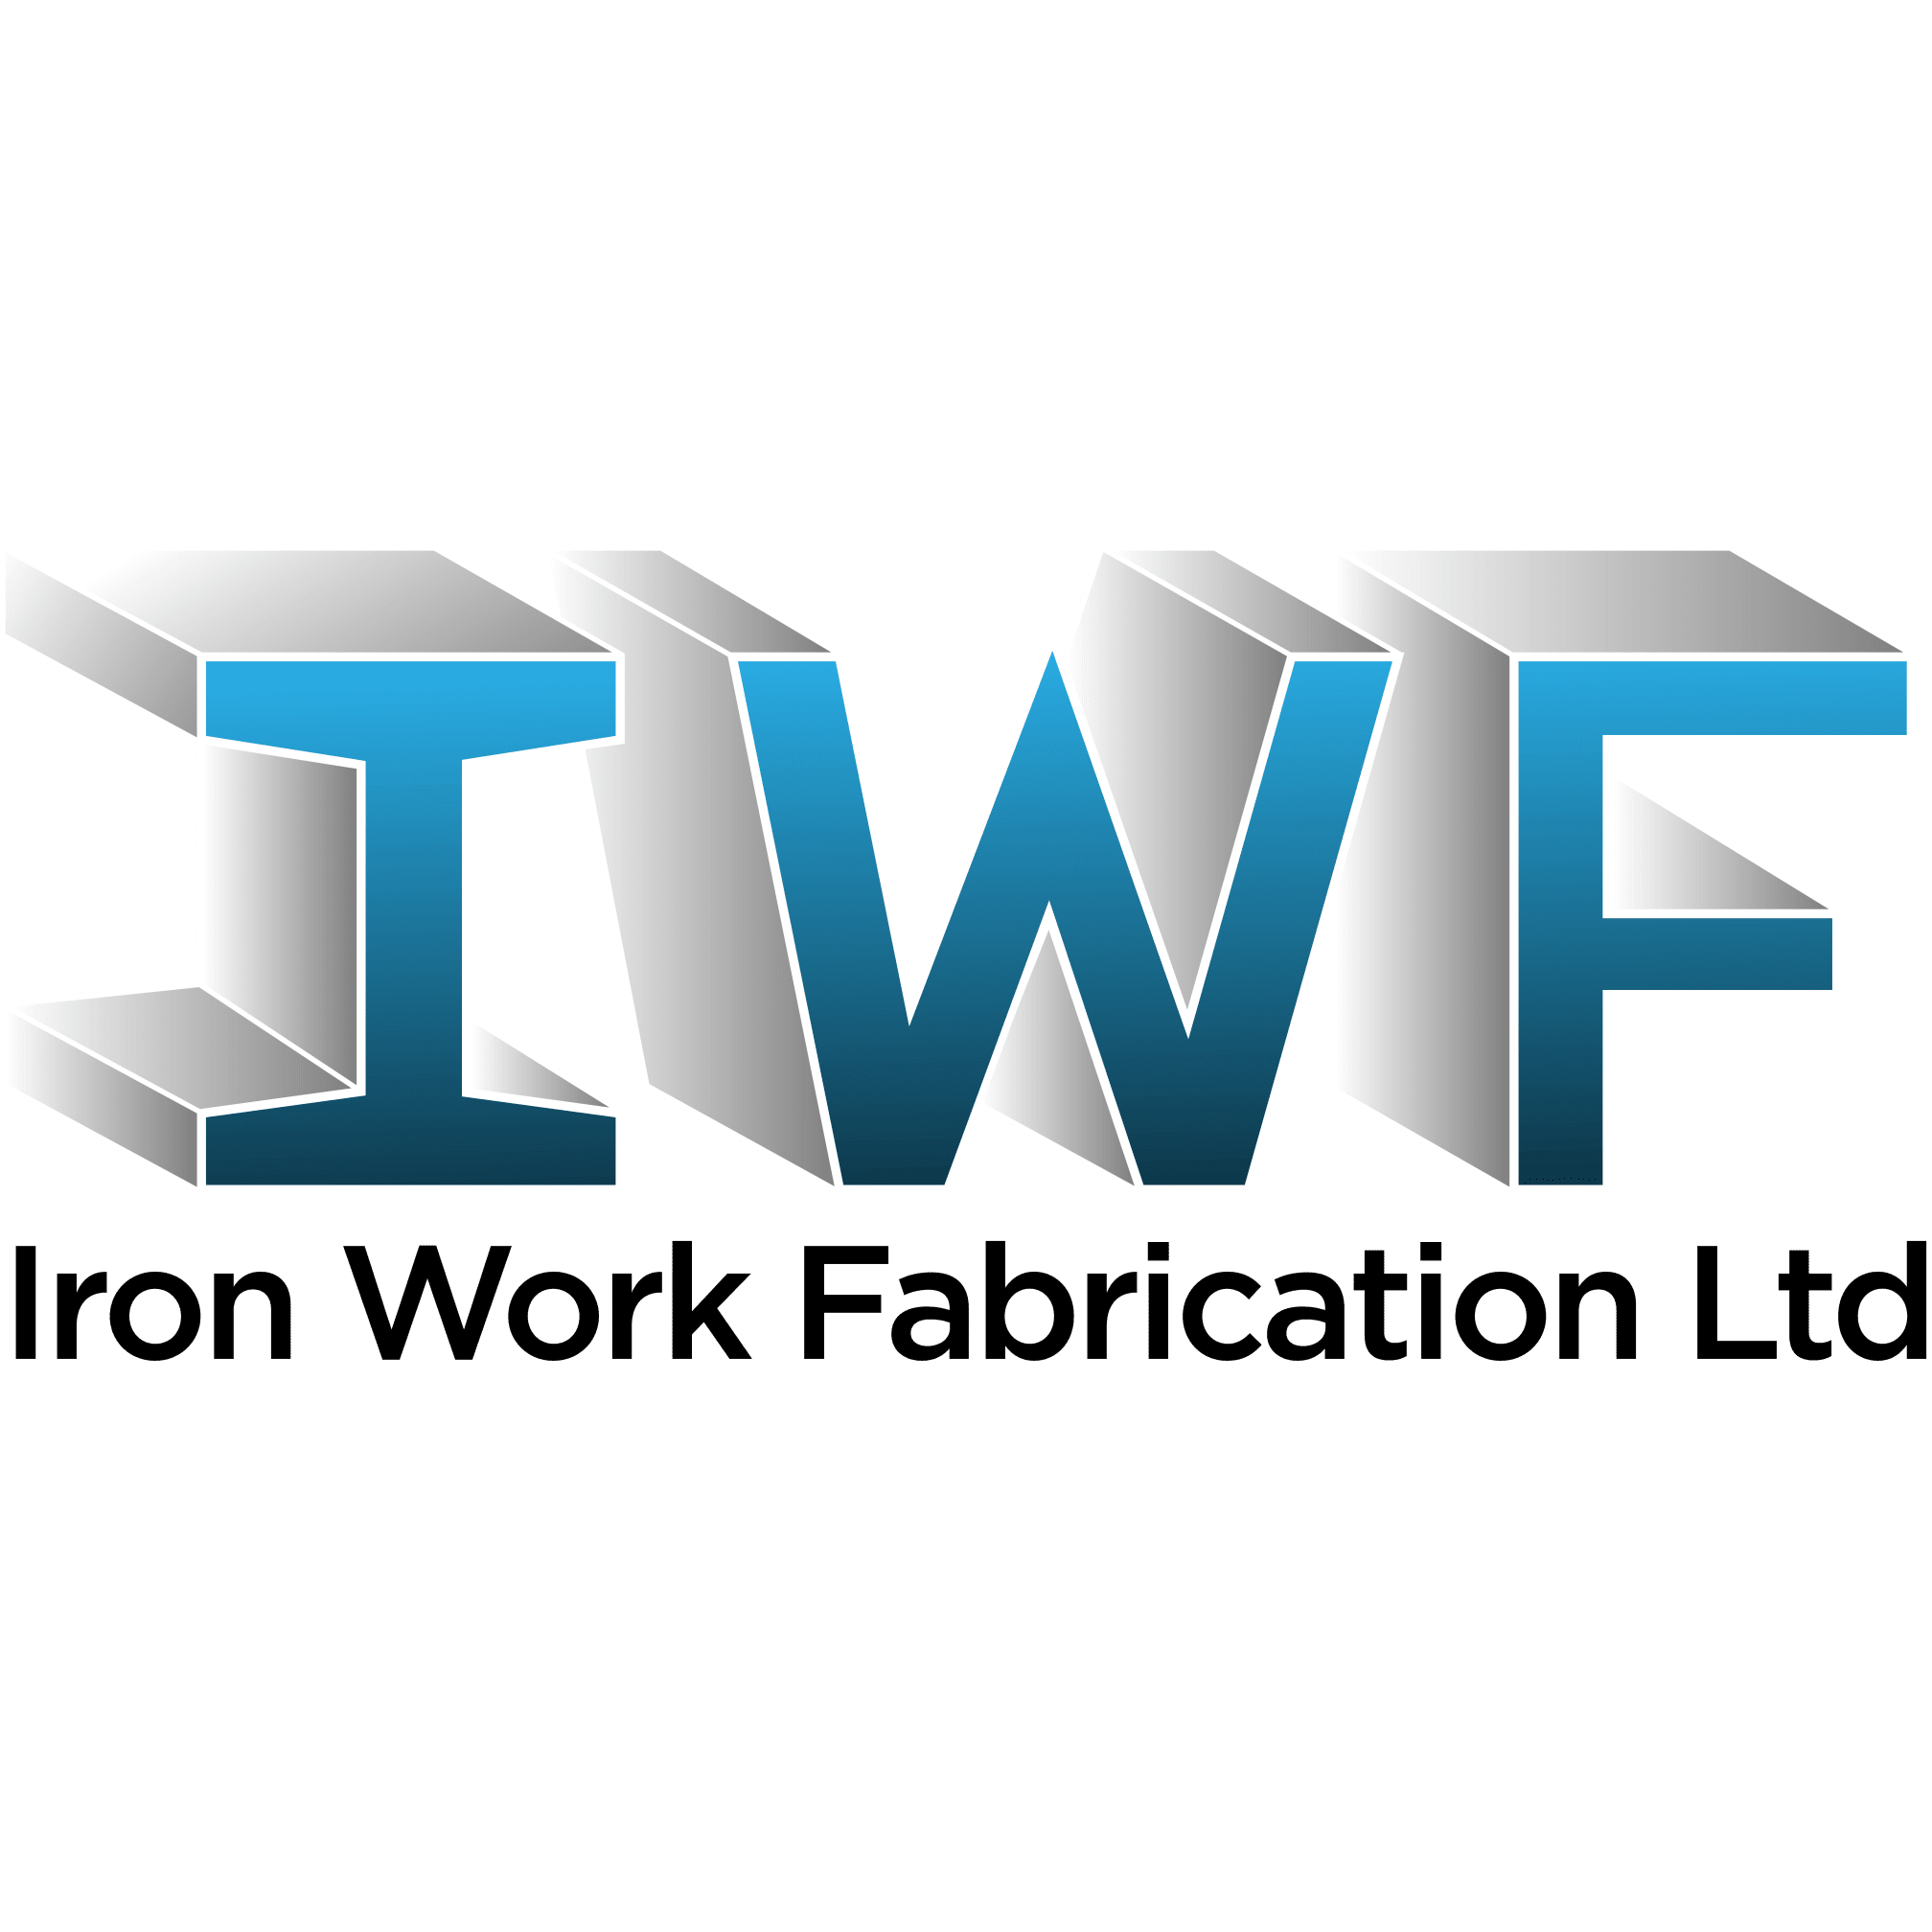 Iron Work Fabrications - Oldham, Lancashire OL4 5DR - 01616 240154 | ShowMeLocal.com